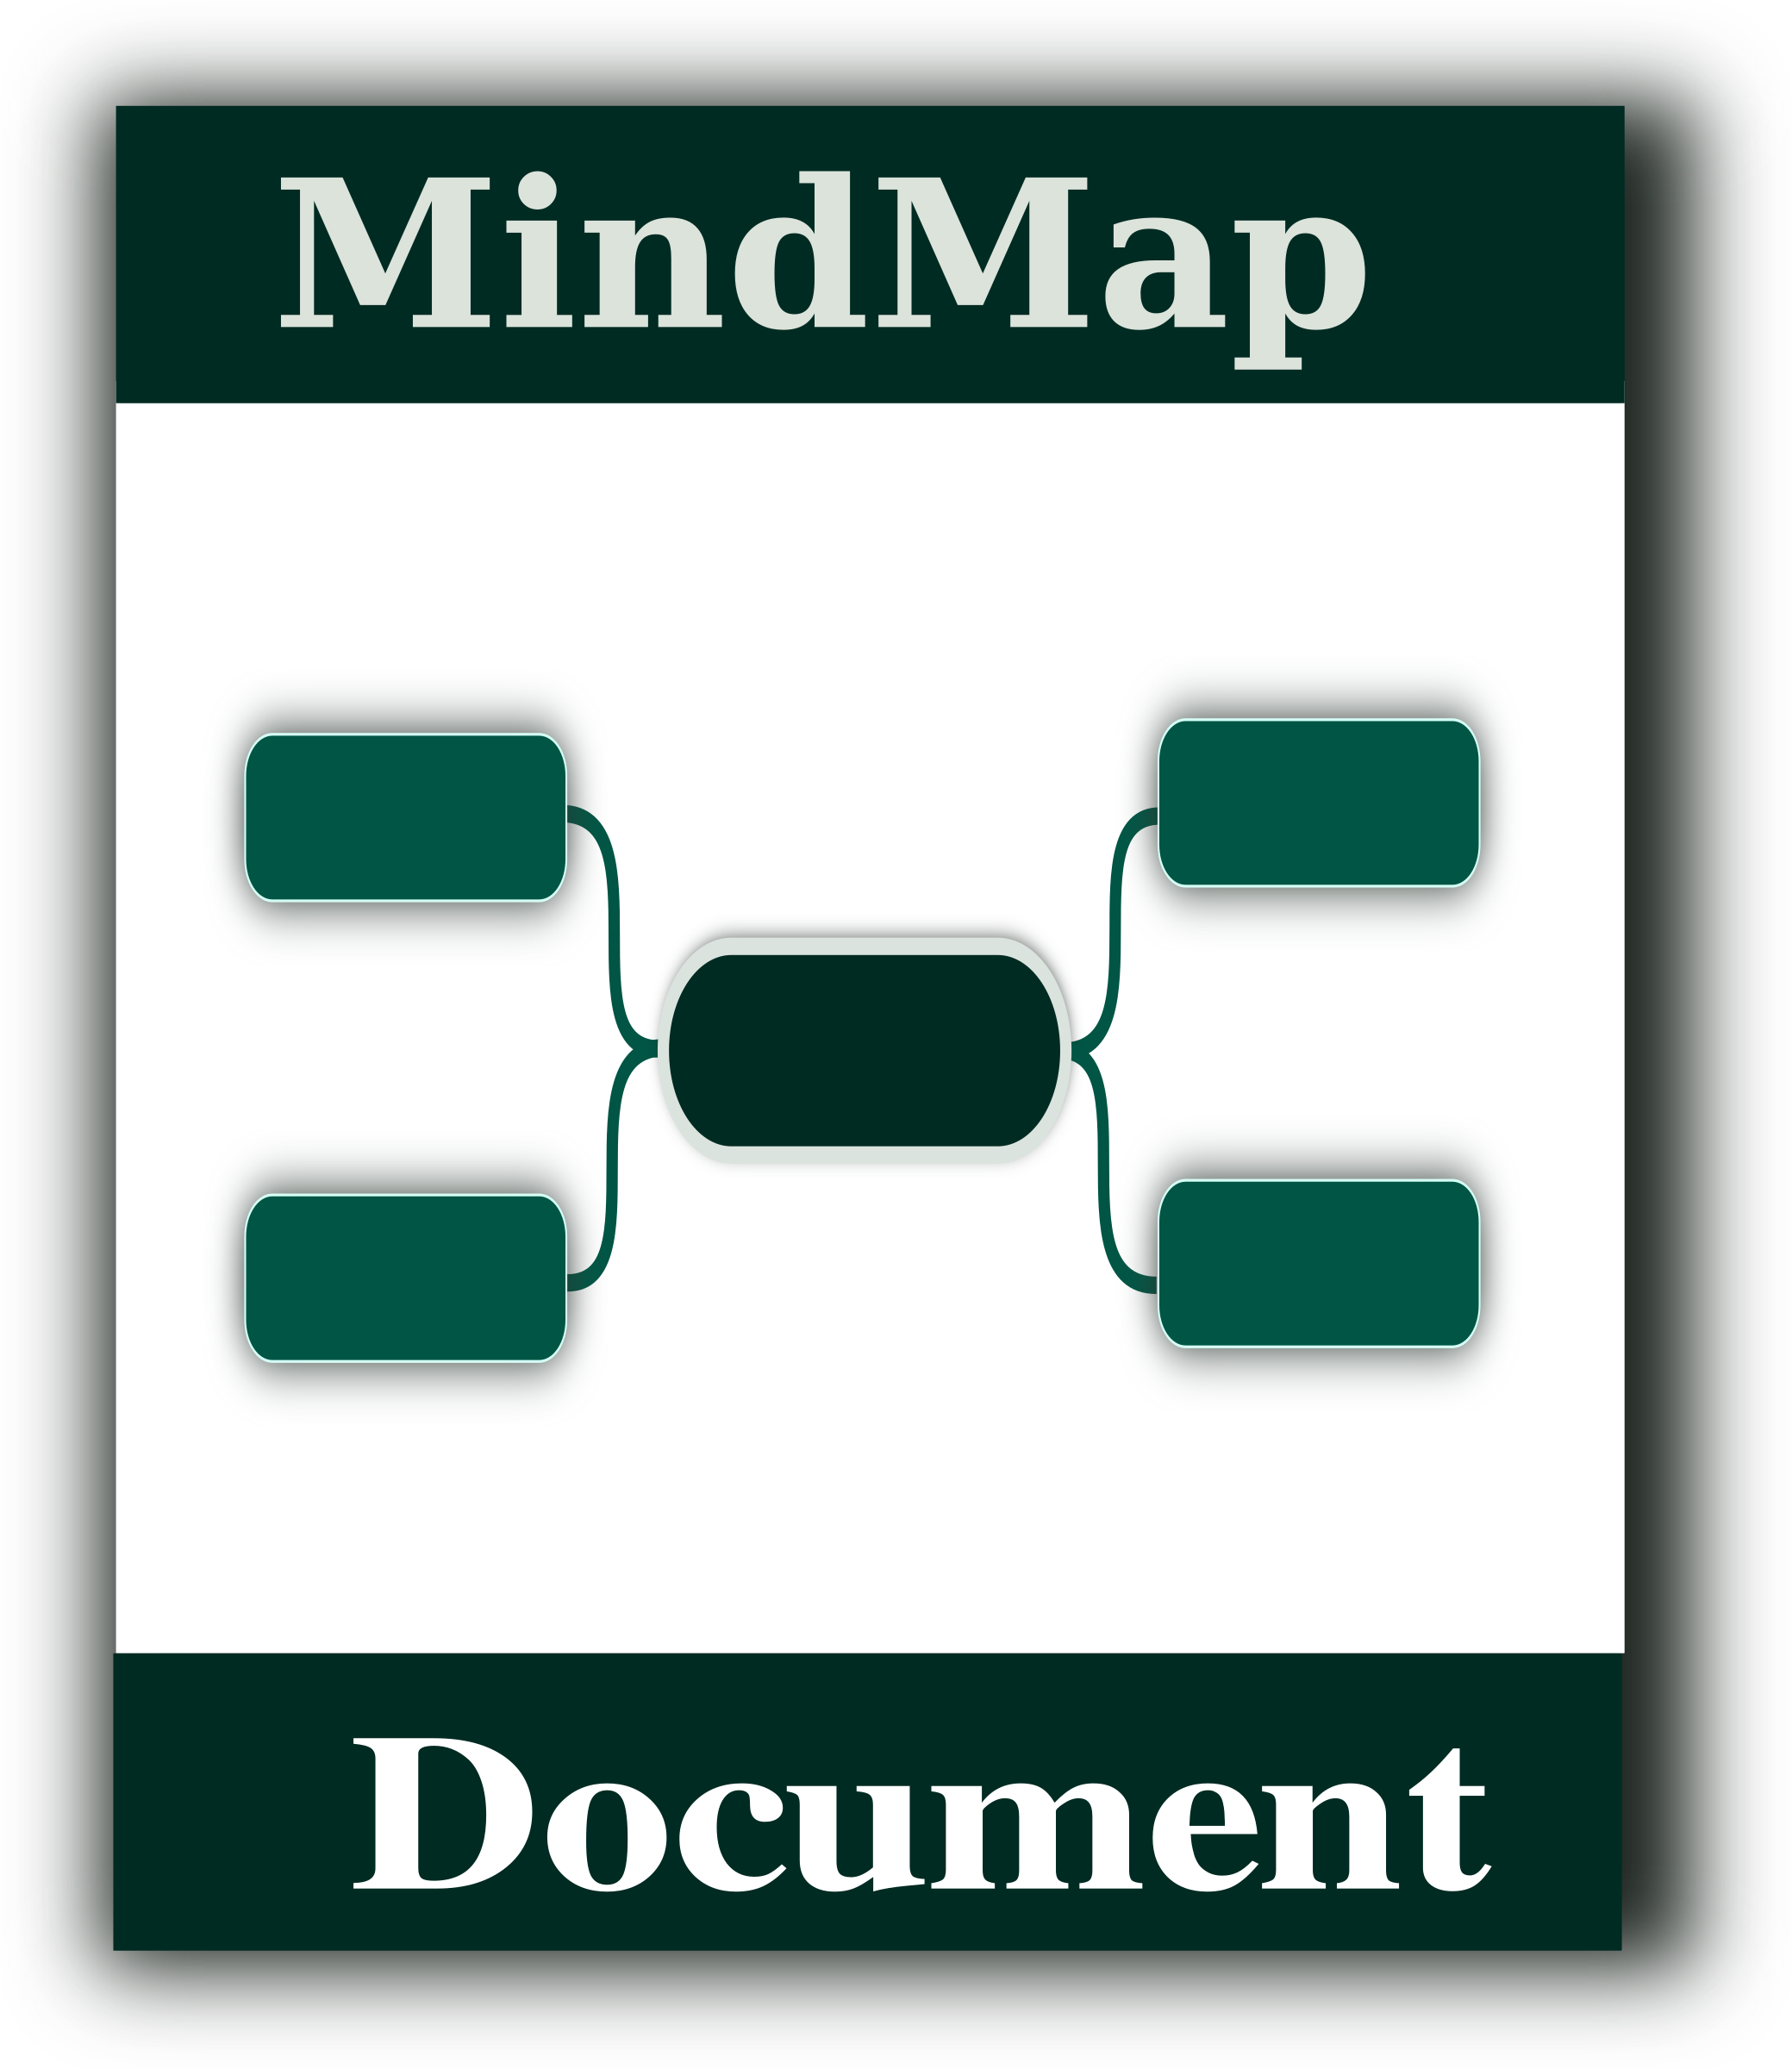 Mindmap icon by gsagri04